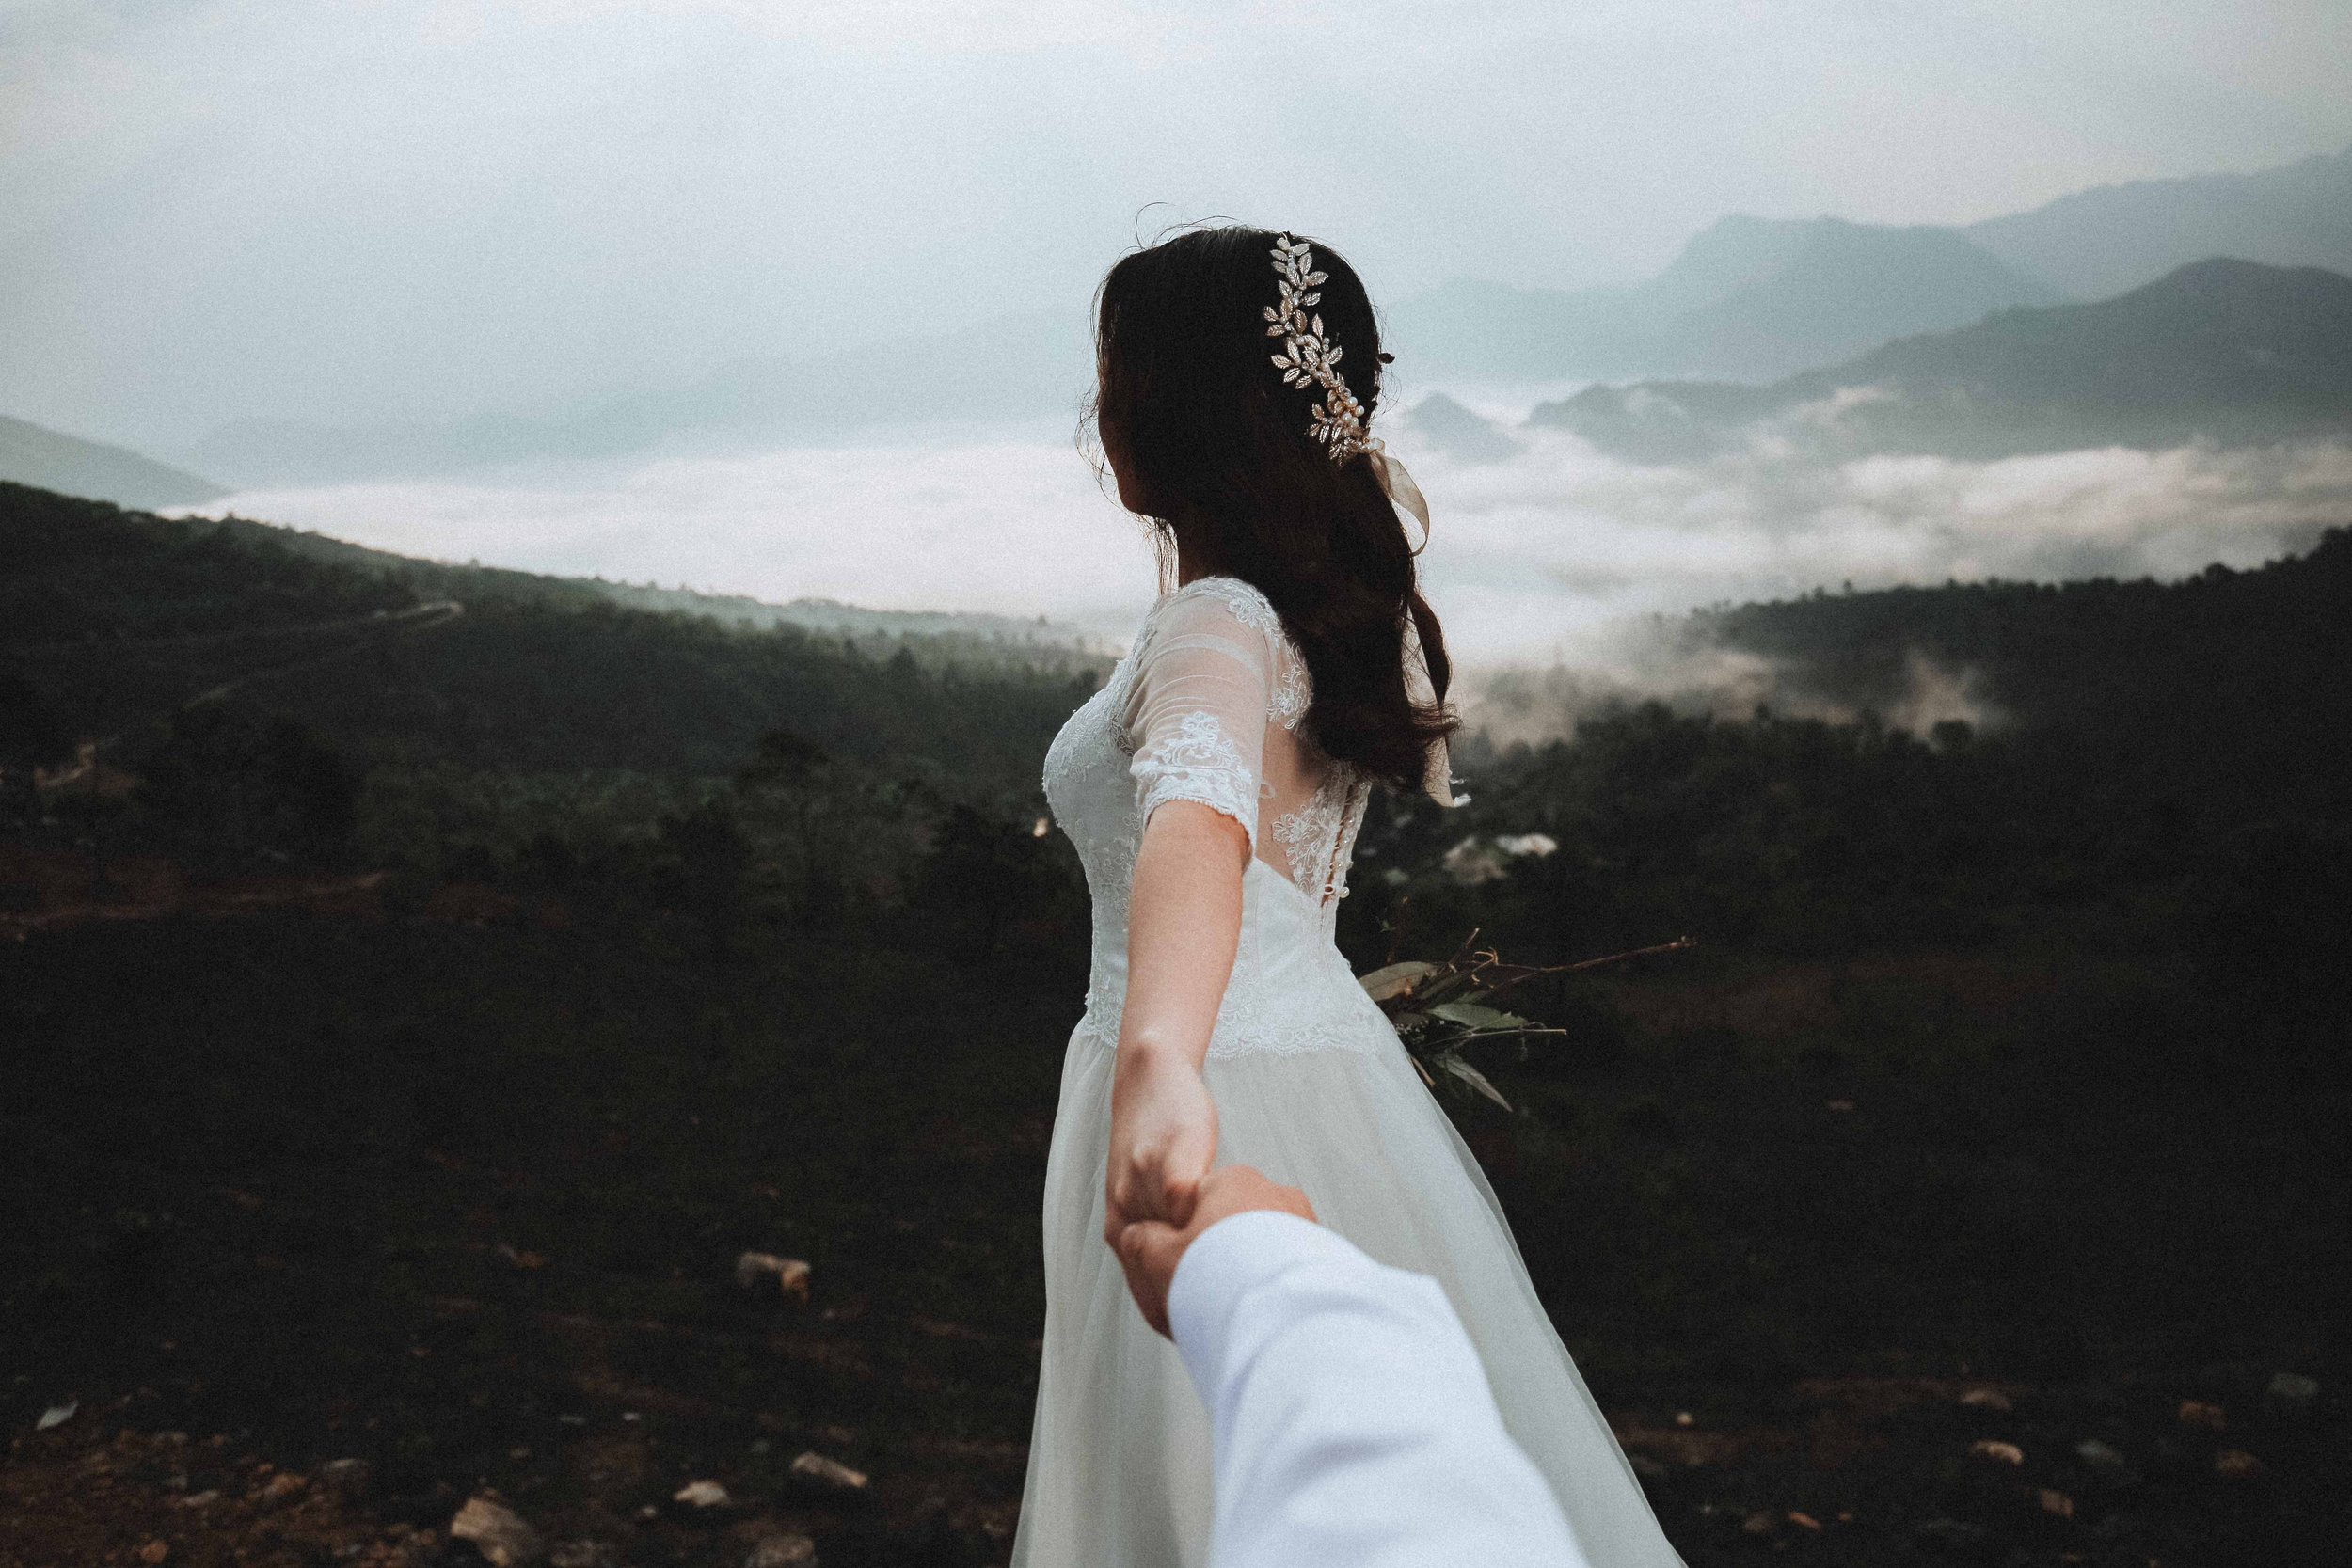 Unique Things I Want At My Wedding